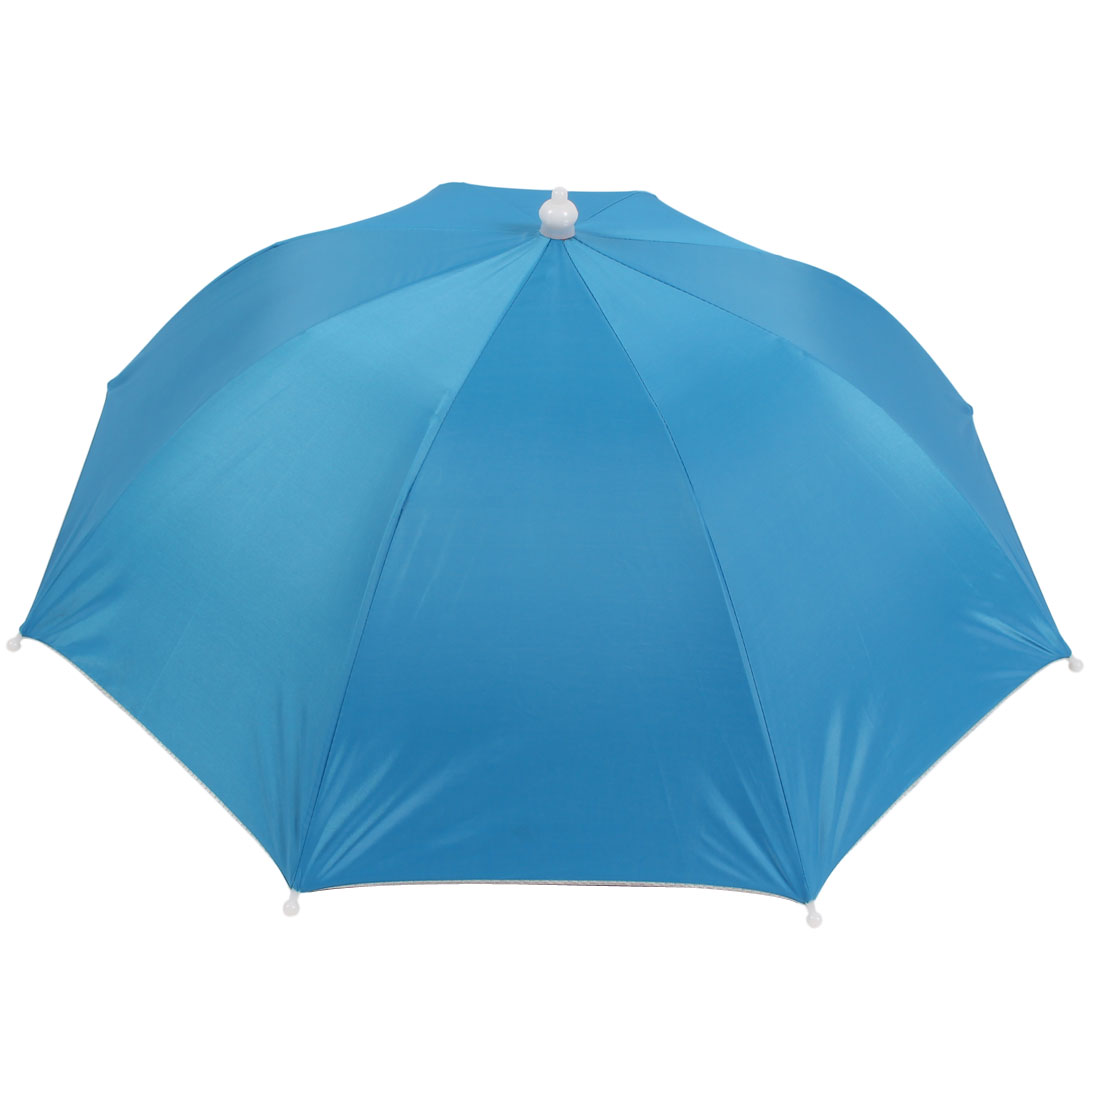 65cm Diameter Fishing Beach Sports Sun Rain Hands Free Umbrella Headwear Blue